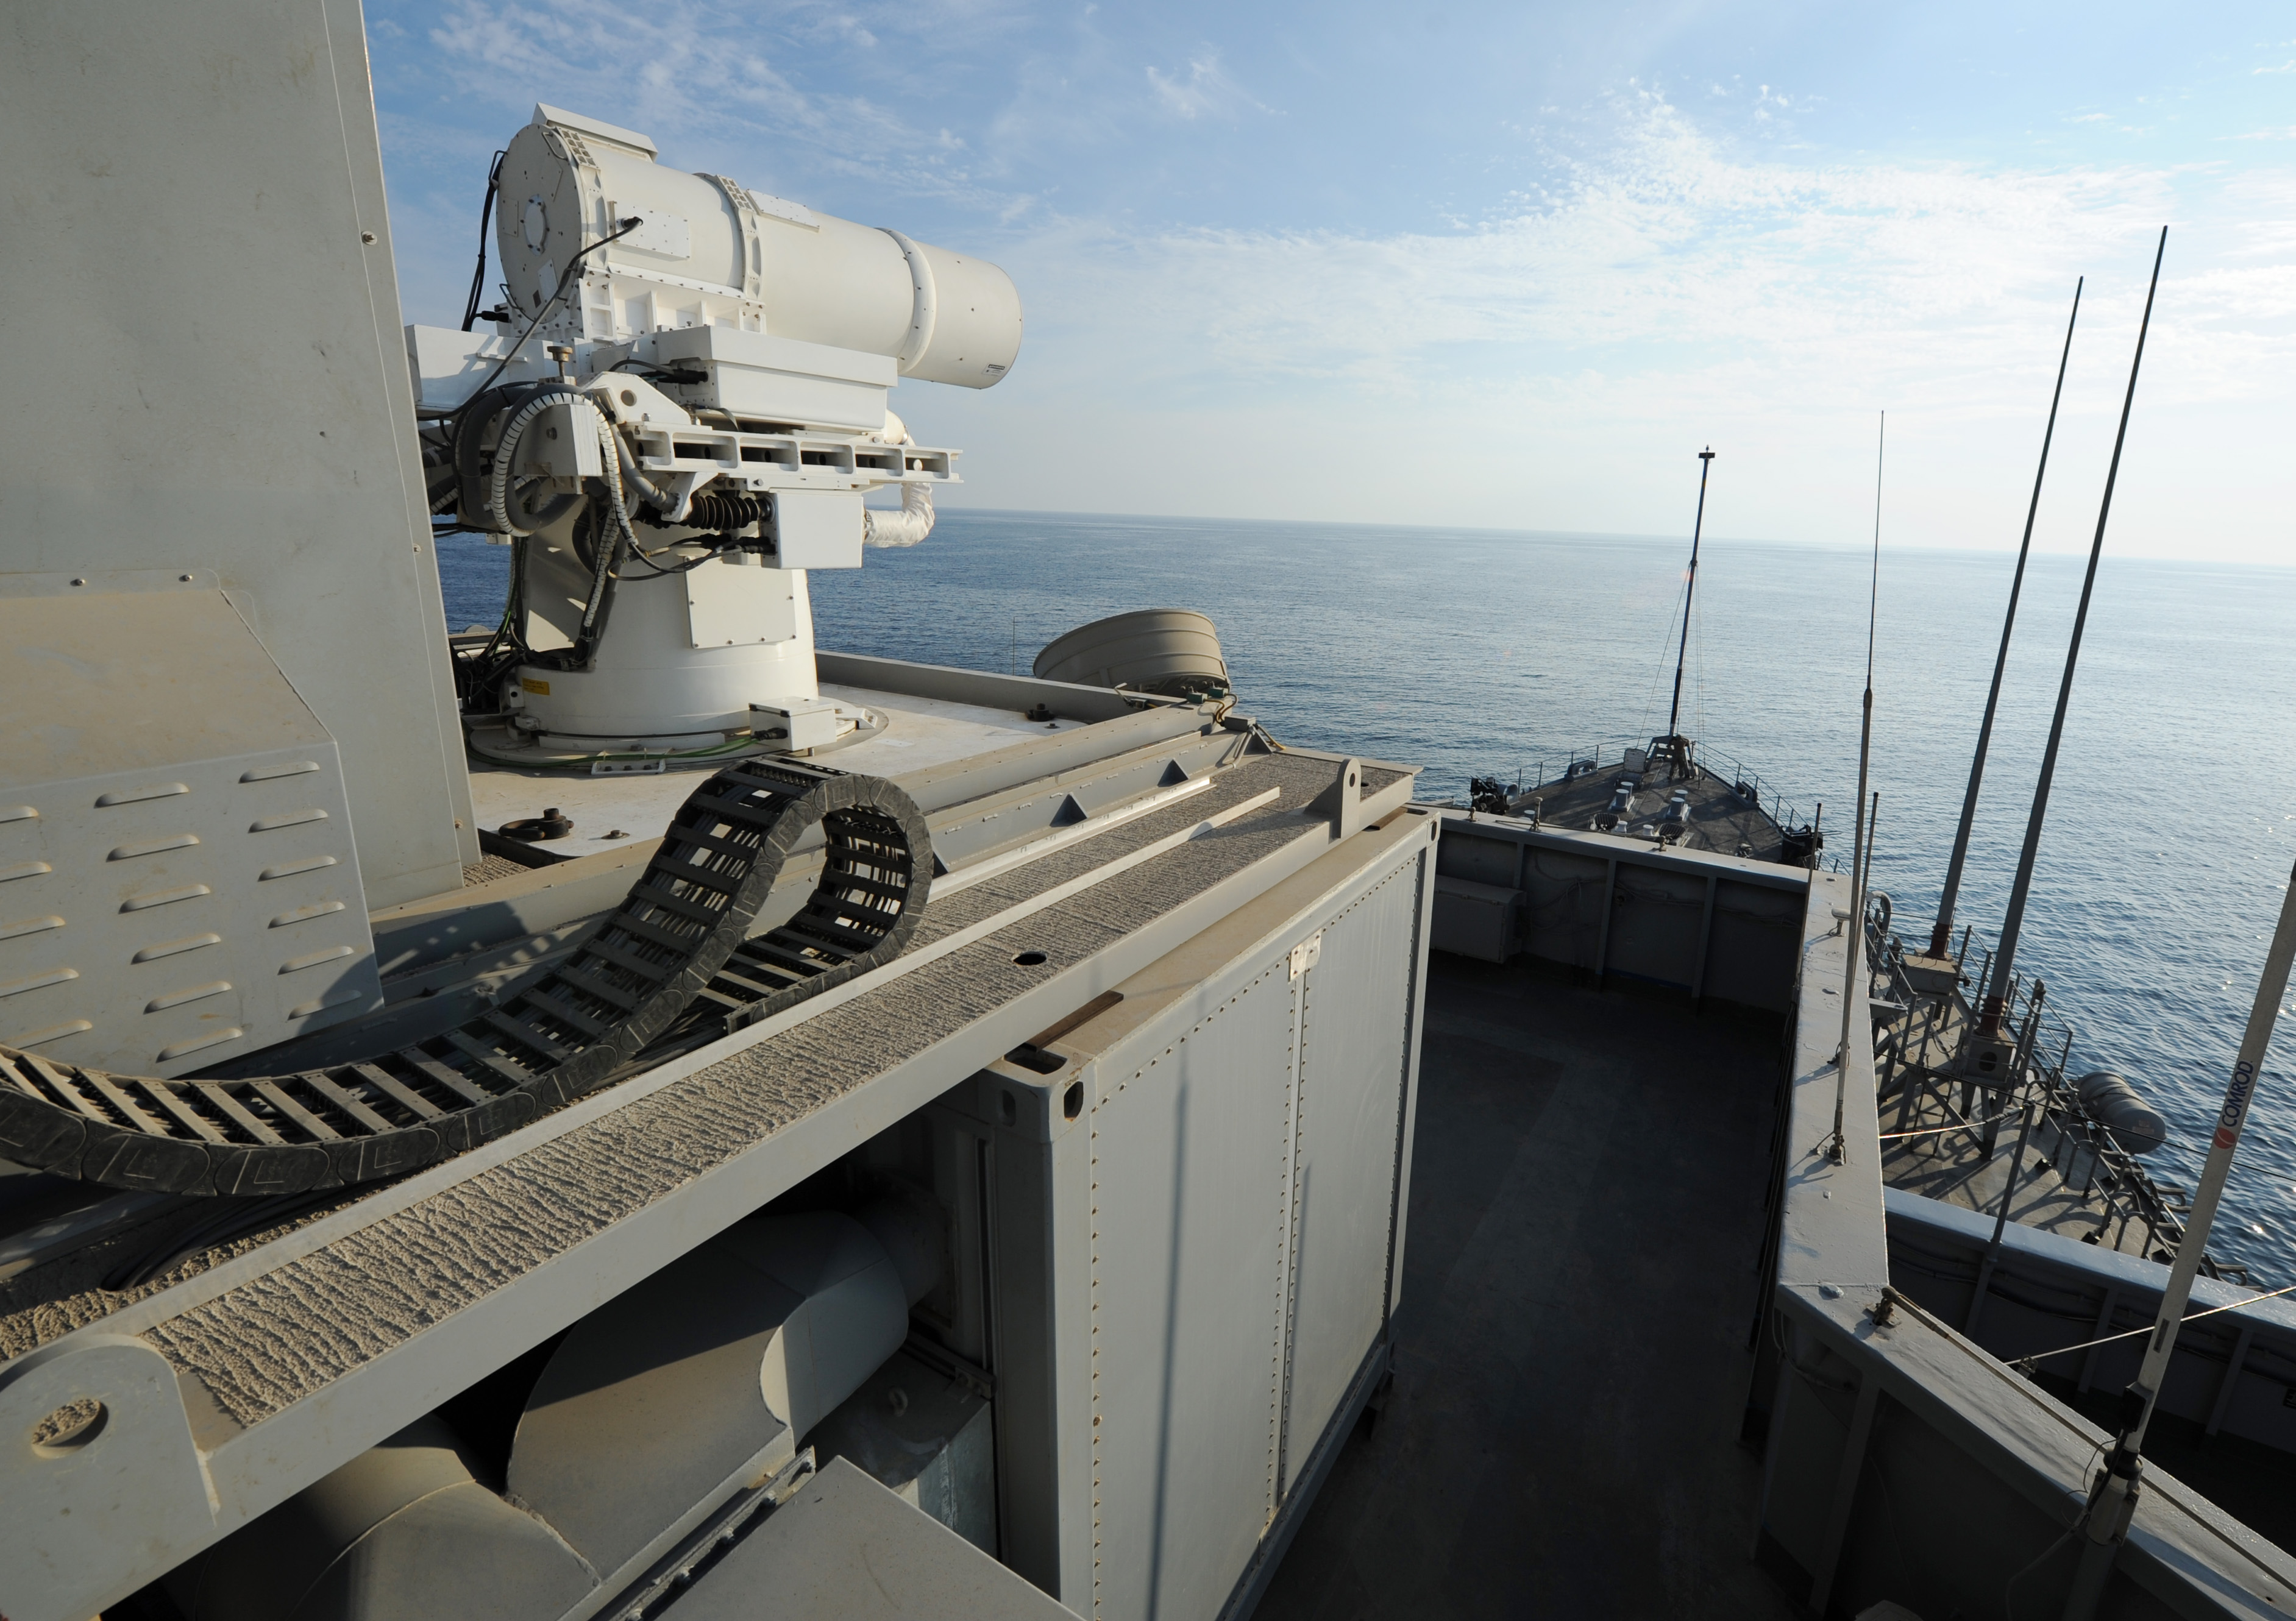 The Afloat Forward Staging Base (Interim) USS Ponce (ASB(I) 15) conducts an operational demonstration of the Office of Naval Research (ONR)-sponsored Laser Weapon System (LaWS) while deployed to the Arabian Gulf on Nov. 16, 2014. US Navy photo.